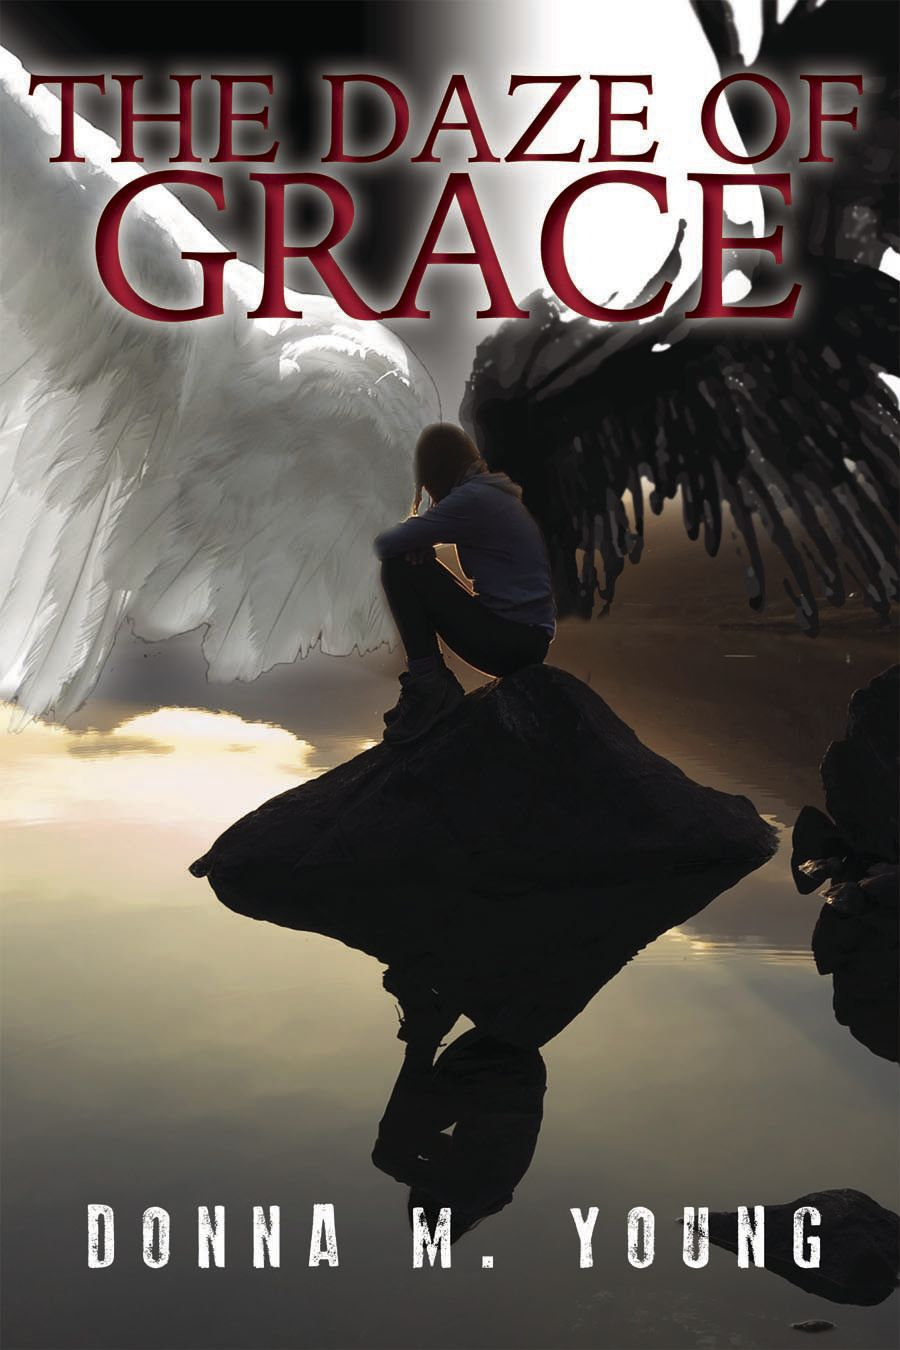 daze of grace book cover